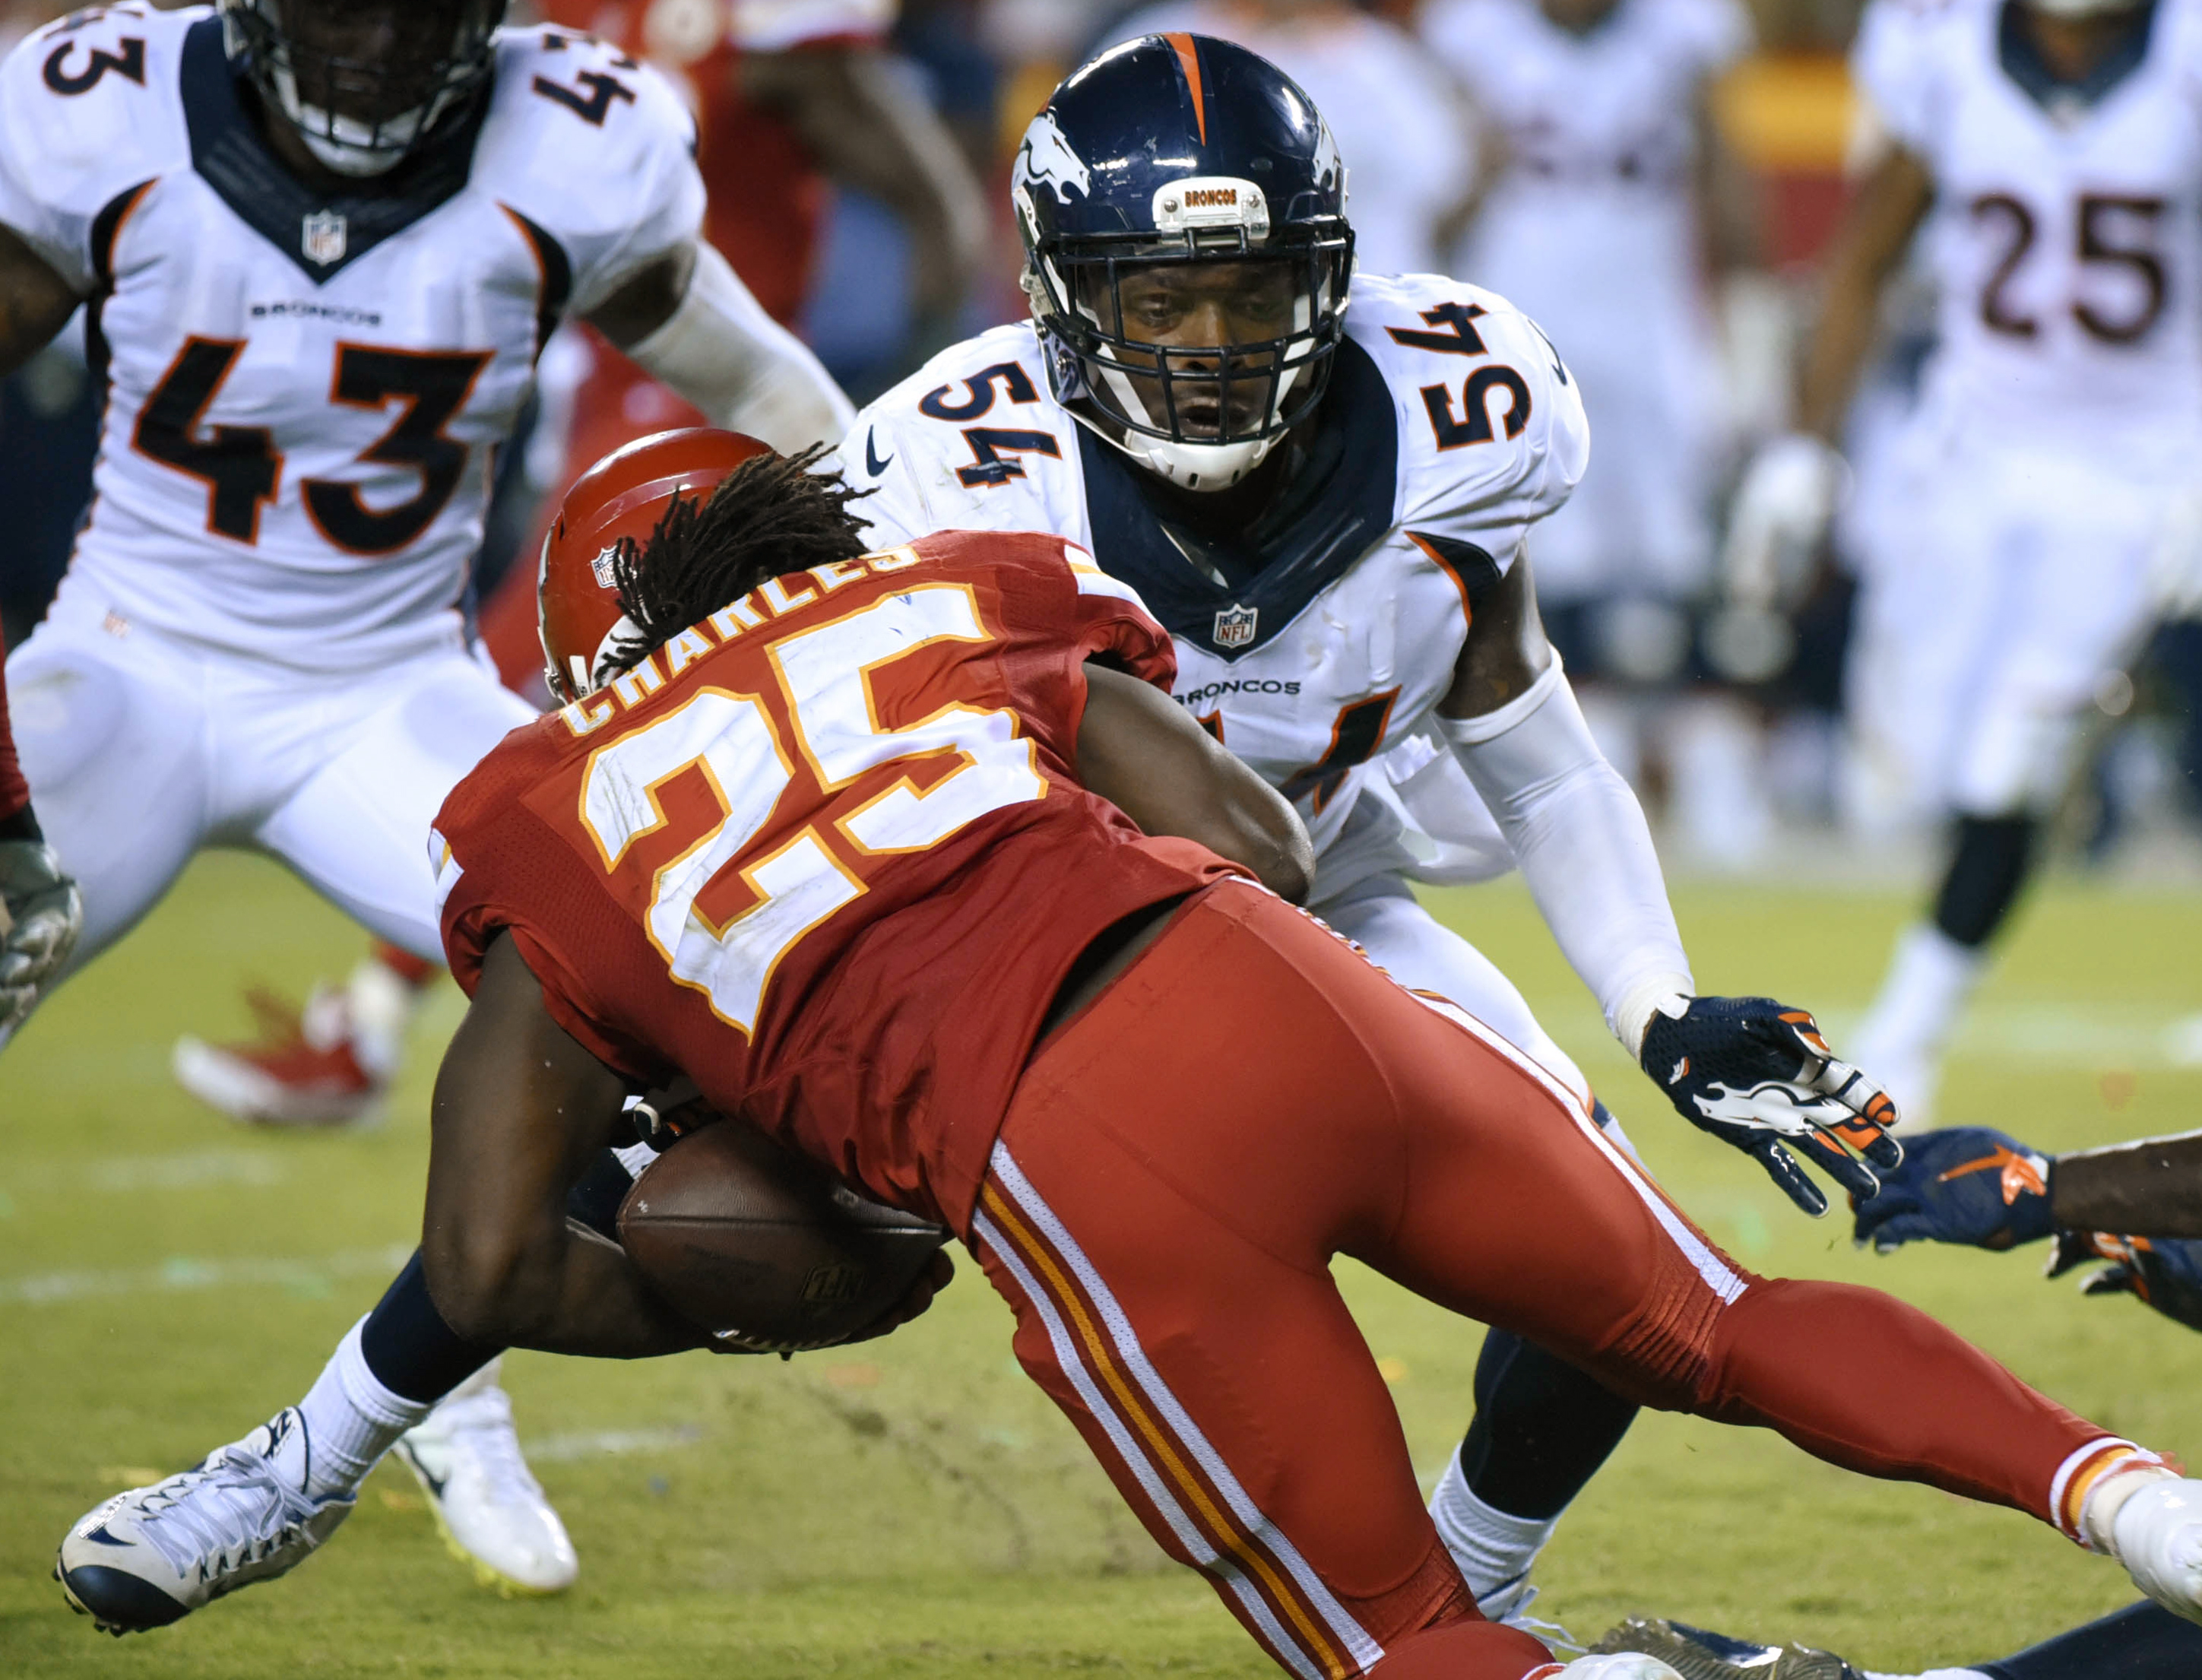 Kansas City Chiefs running back Jamaal Charles (25) is tackled by Denver Broncos linebacker Brandon Marshall (54) and fumbles the ball for a turnover during the second half of an NFL football game in Kansas City, Mo., Thursday, Sept. 17, 2015. The ball wa